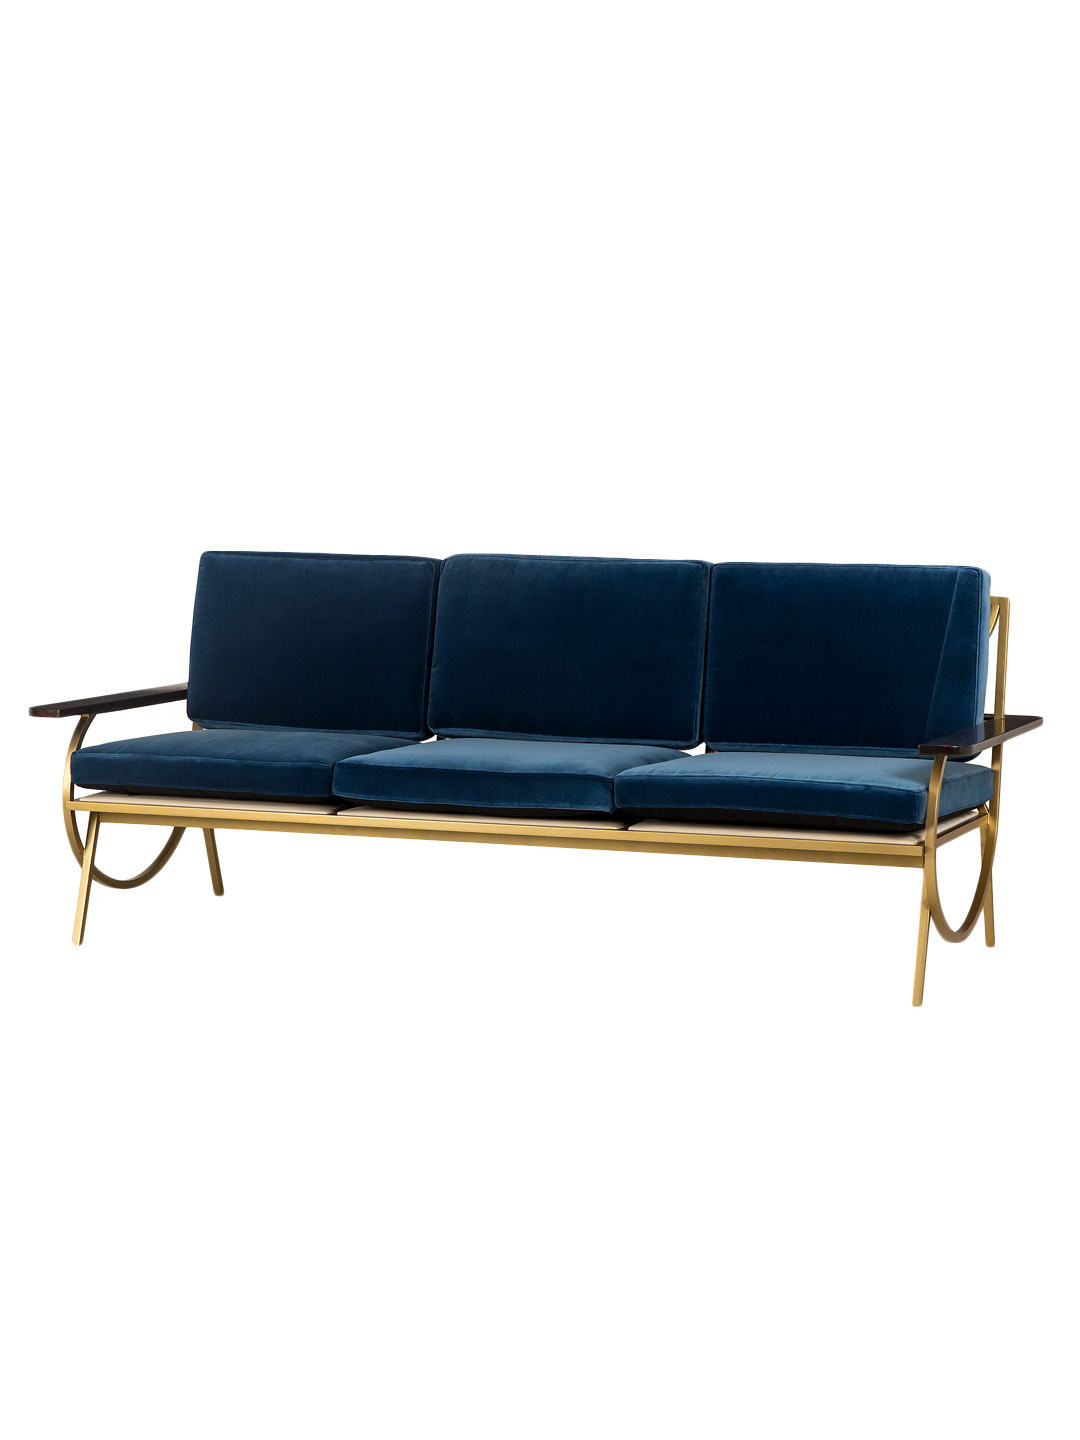 Attirant Styles: A Great Selection Of Discounted Designer And Name Brand Sofas,  Sectionals,